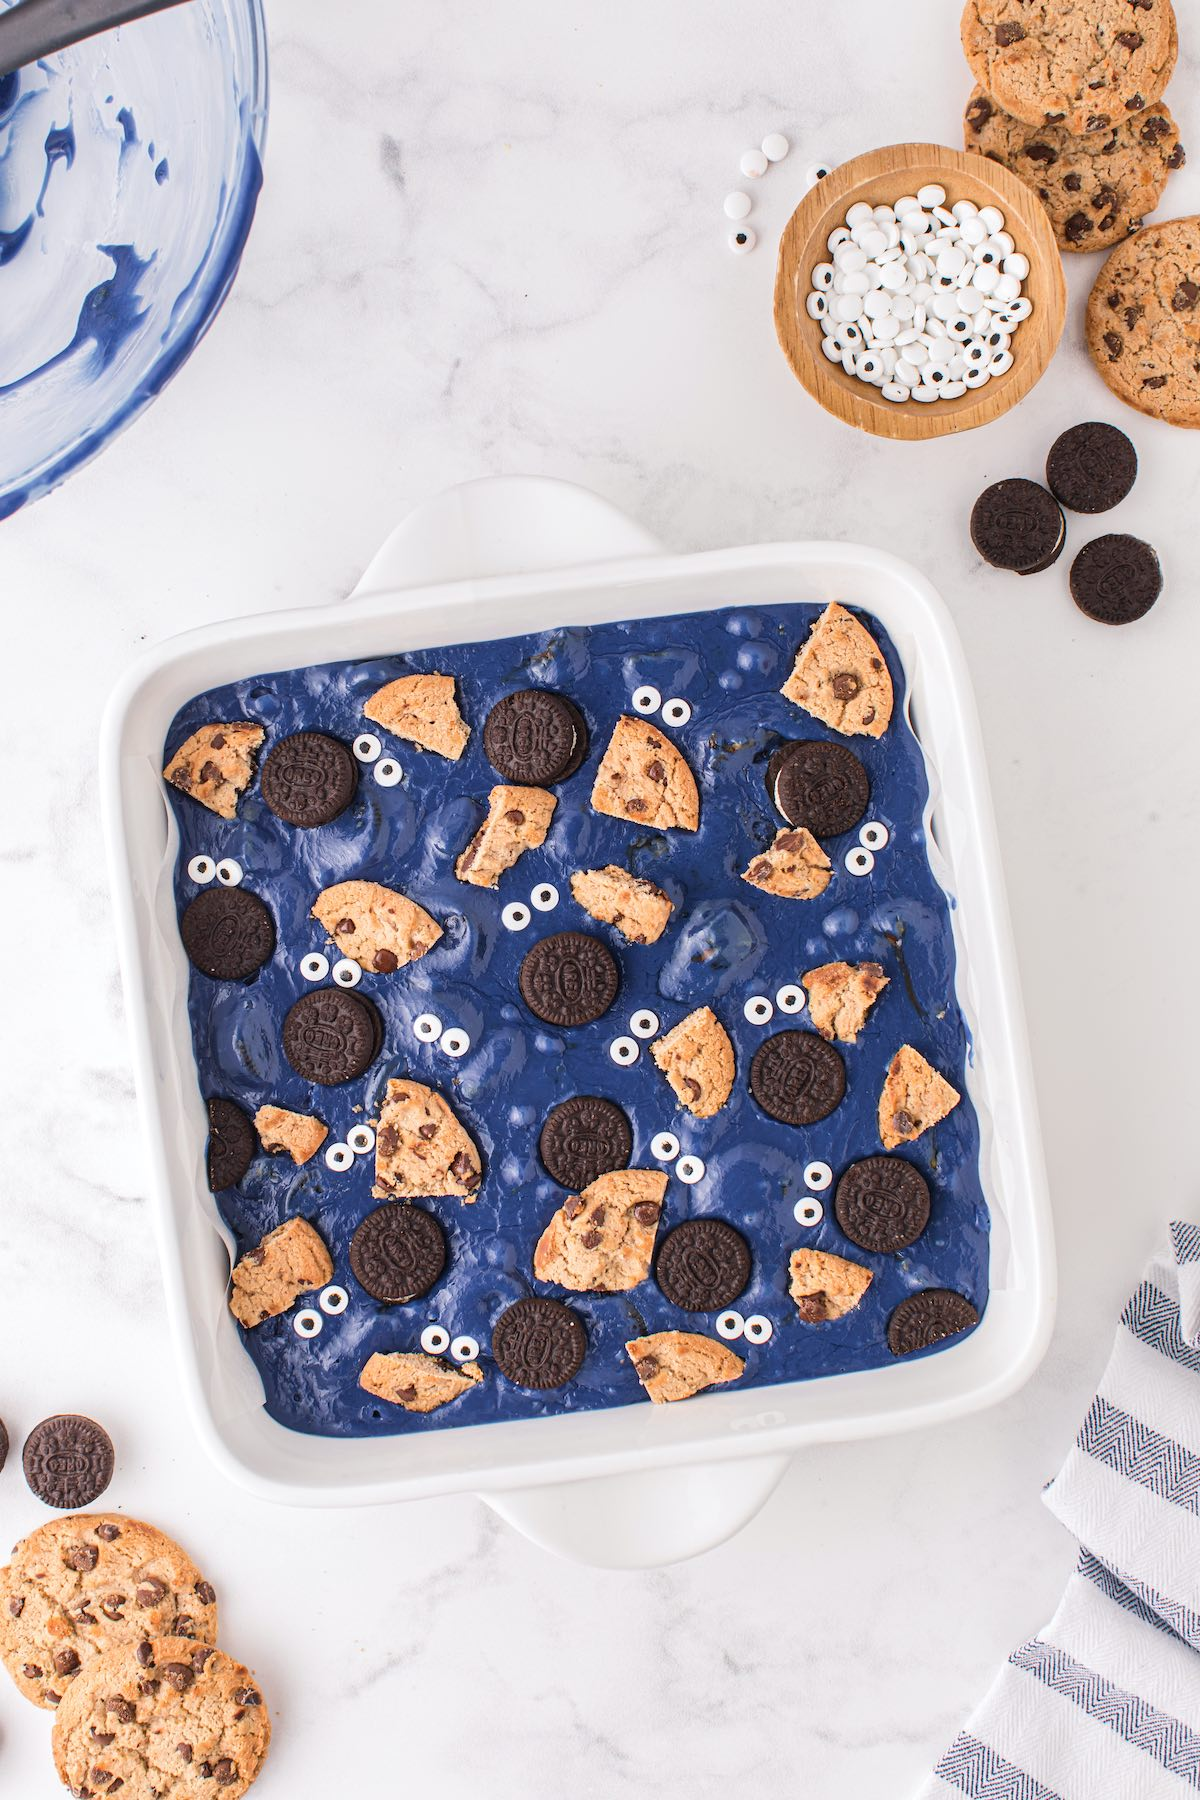 Top the fudge with chocolate chip cookies, mini Oreos, and candy eyes